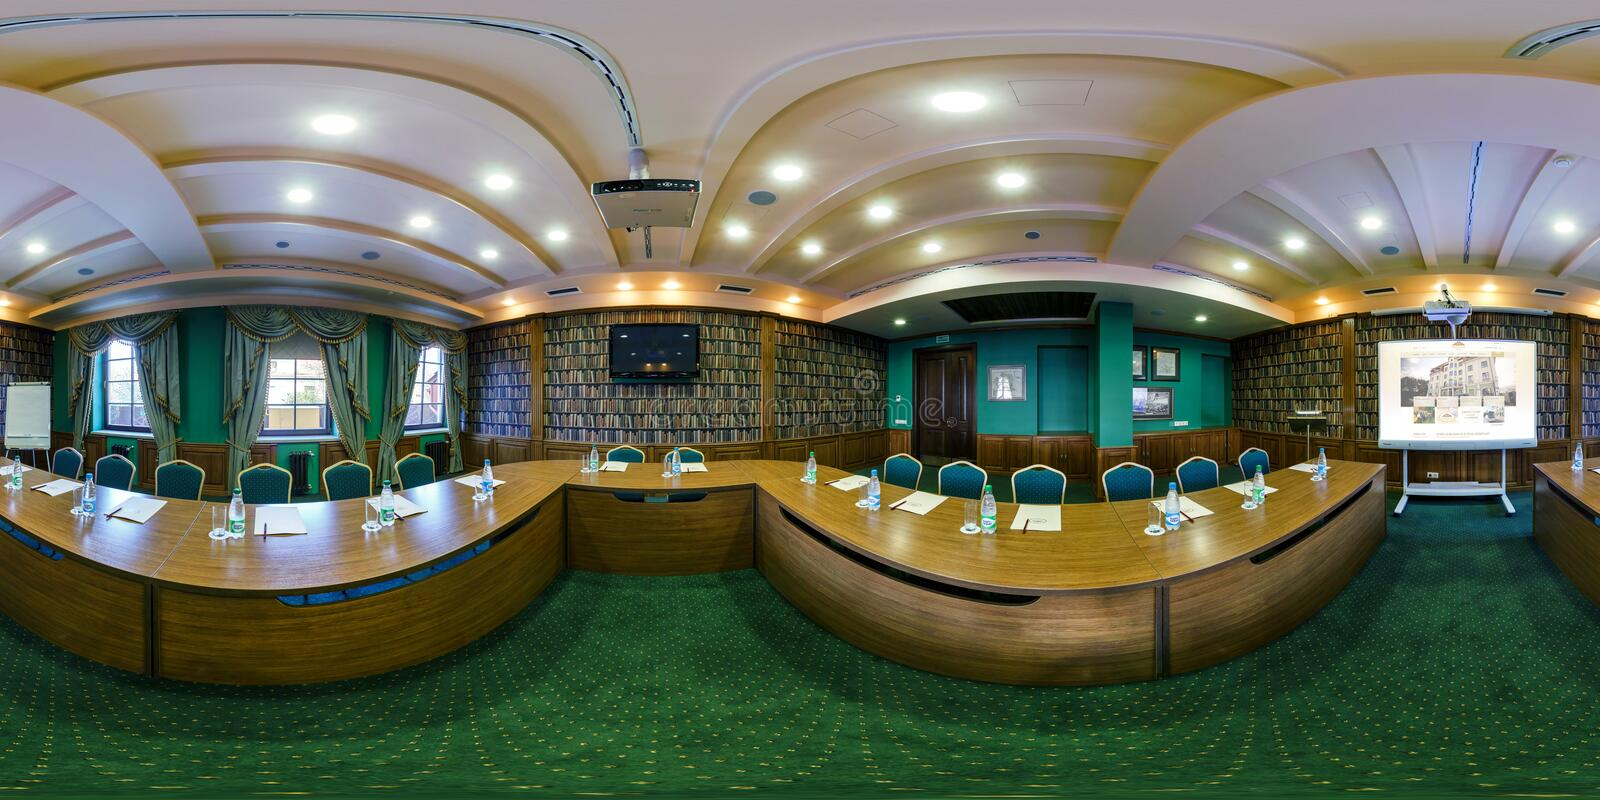 BREST, BELARUS - APRIL 27, 2014: Modern loft apartment interior of conference hall, full 360 panorama in equirectangular. Equidistant spherical projection in royalty free stock photography